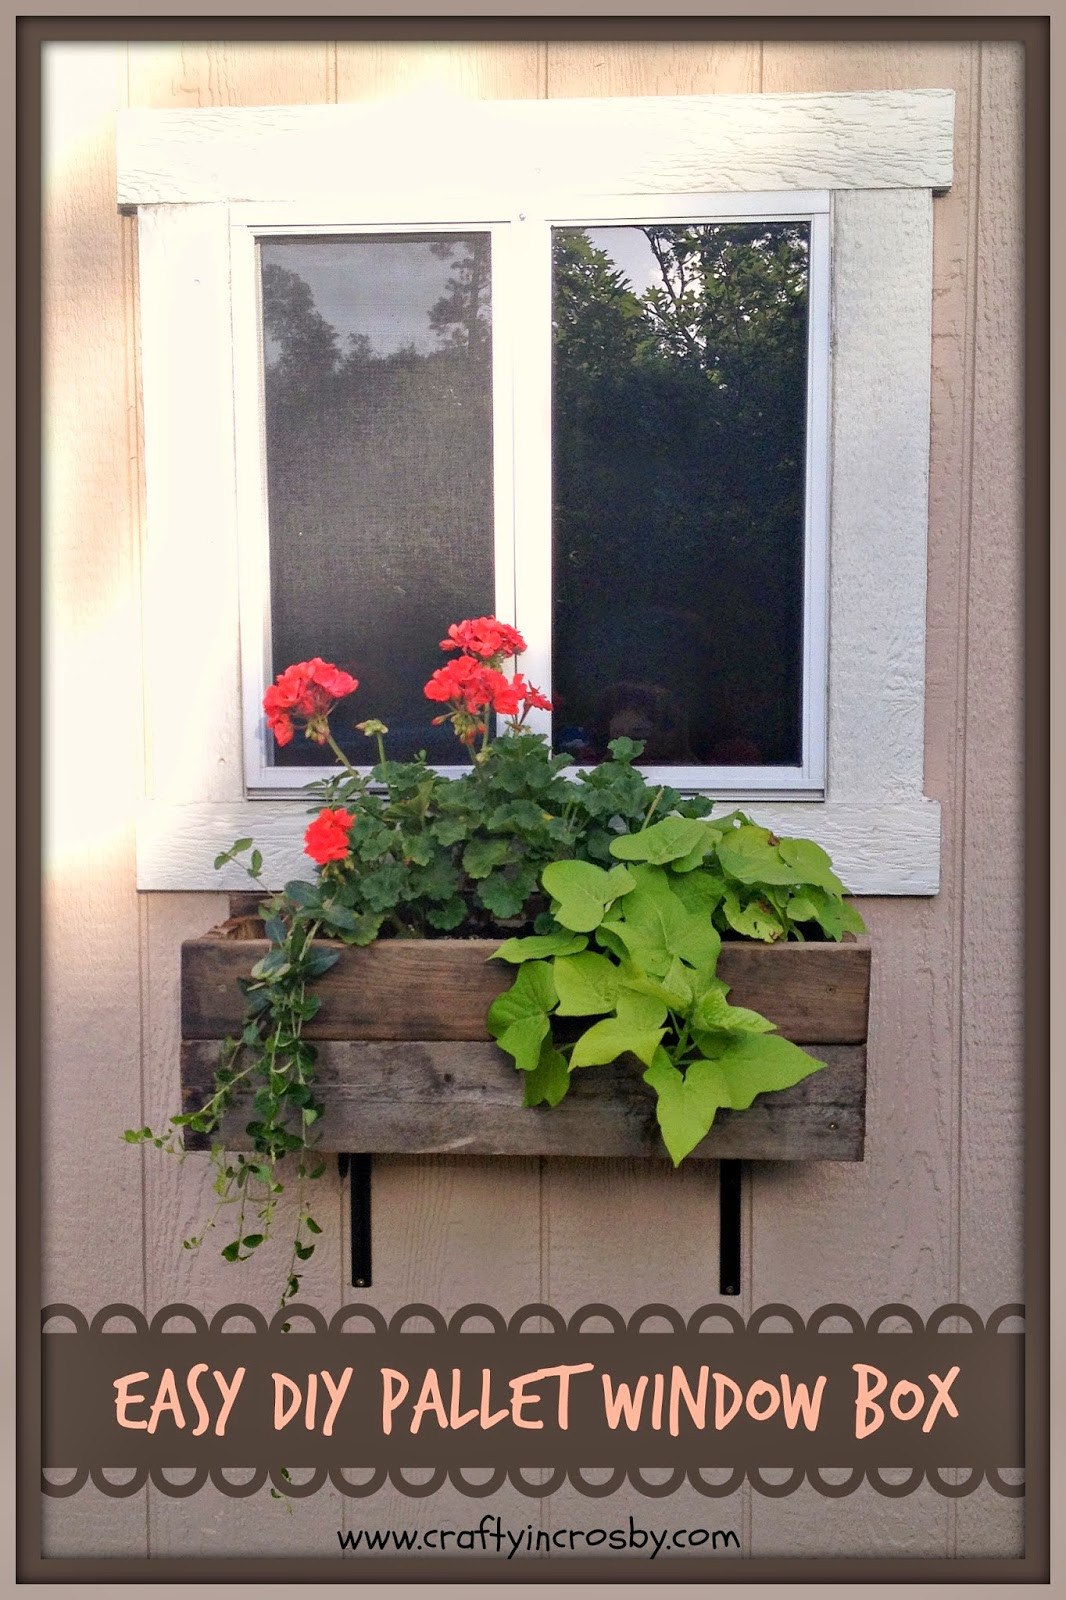 Best ideas about Window Flower Boxes DIY . Save or Pin Crafty in Crosby Easy DIY Pallet Window Box Now.